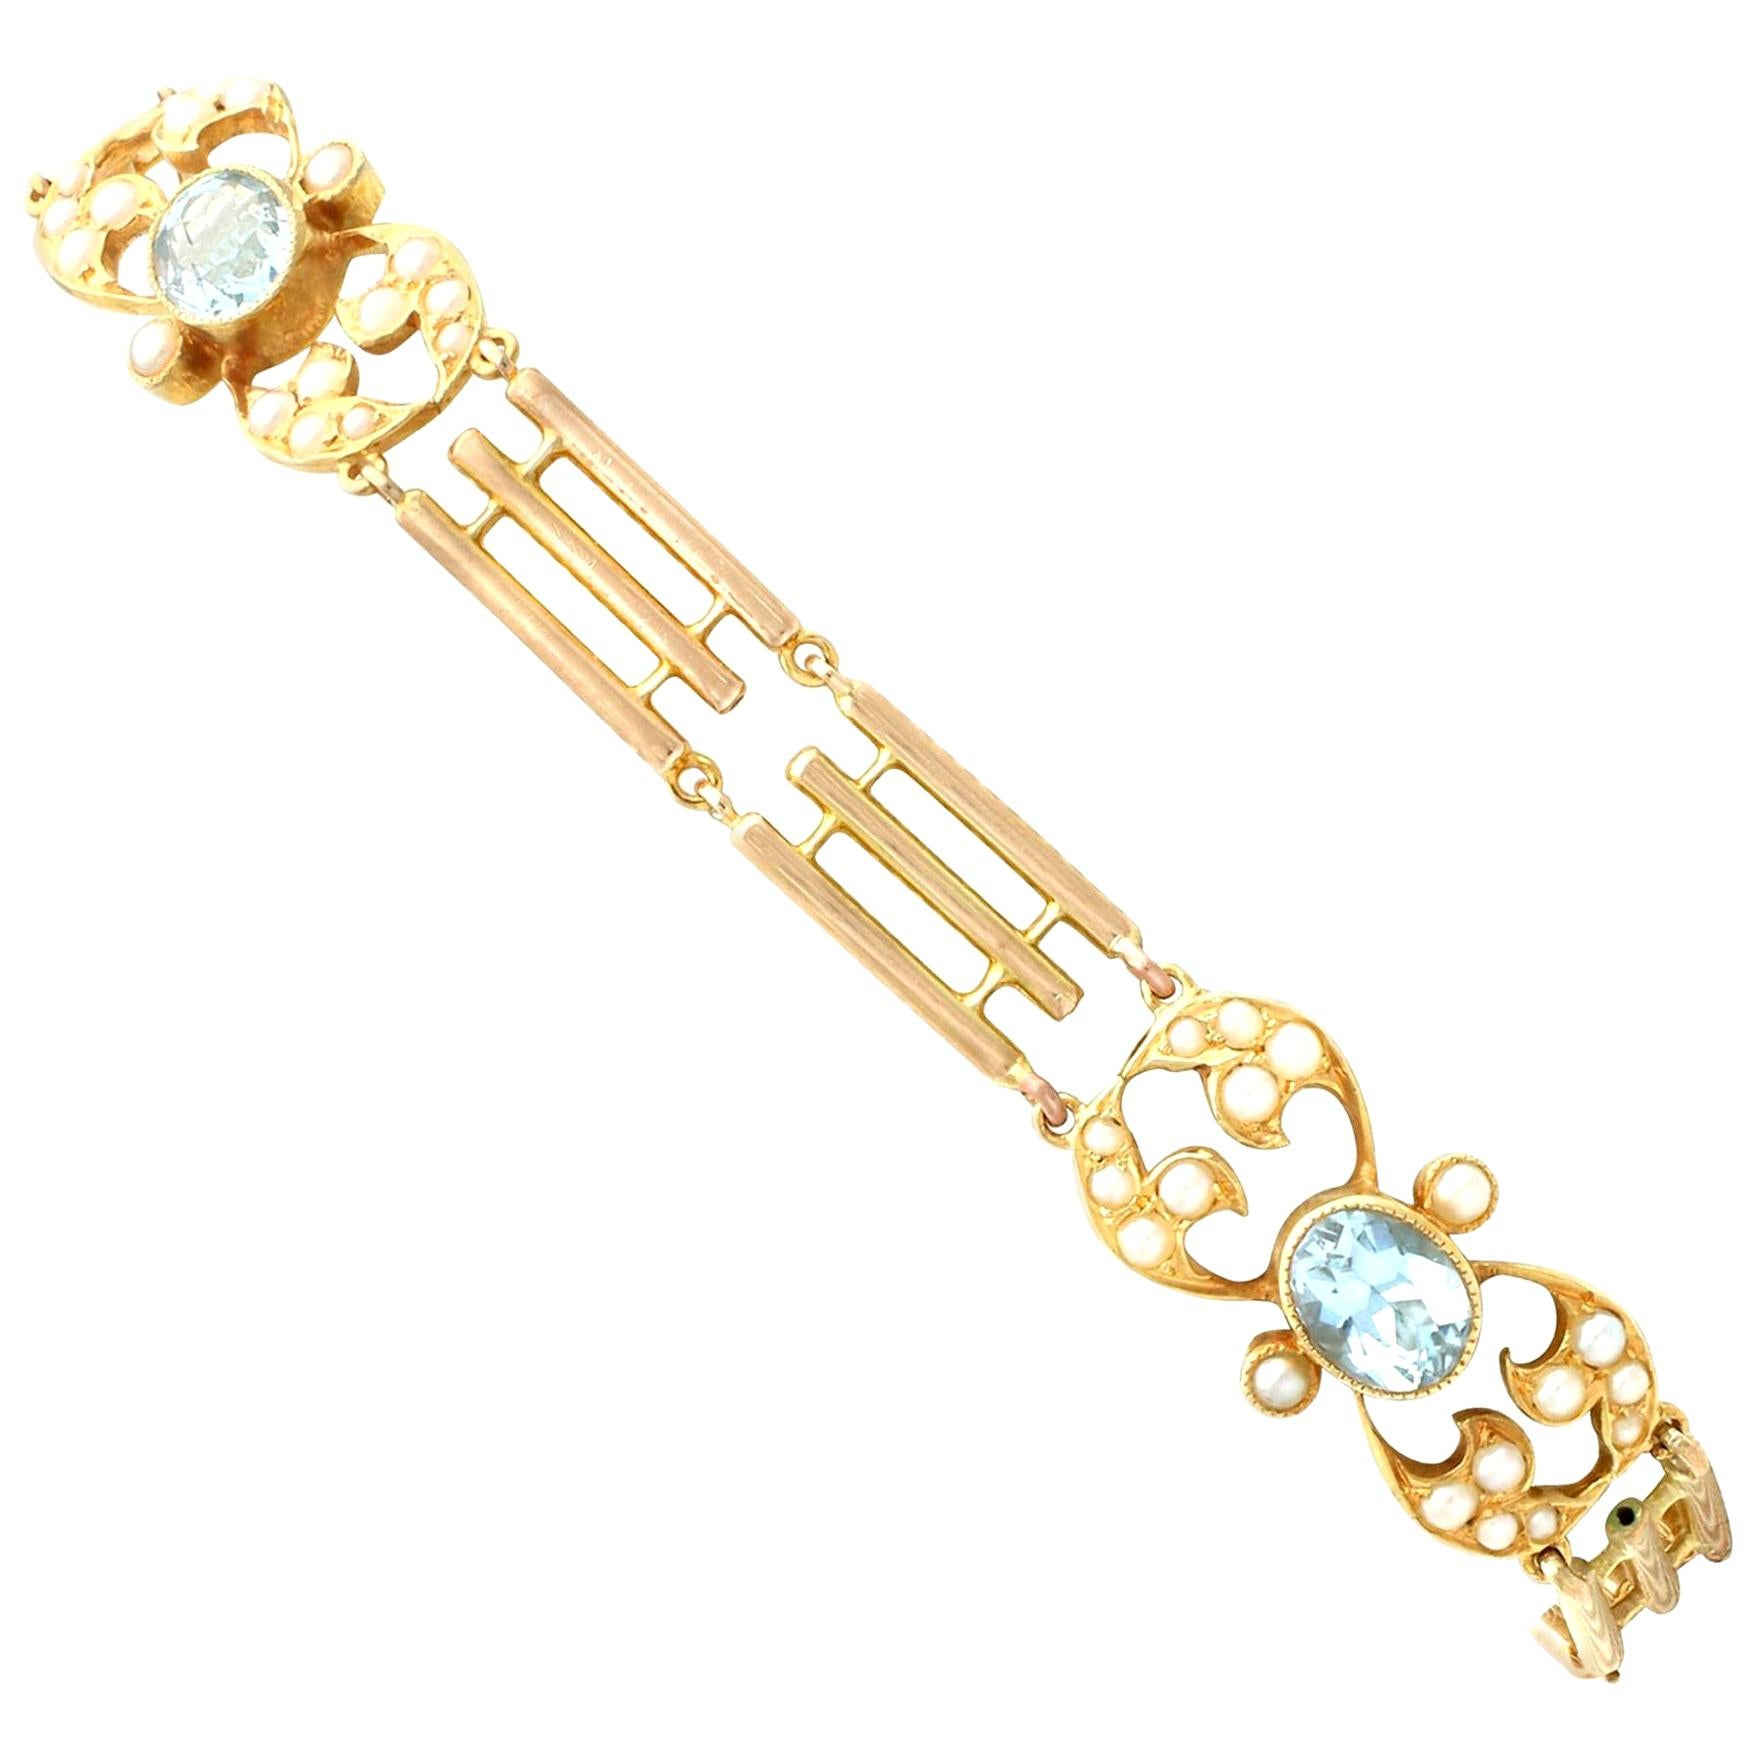 1920s Antique 2.55 Carat Aquamarine and Seed Pearl Yellow Gold Gate Bracelet